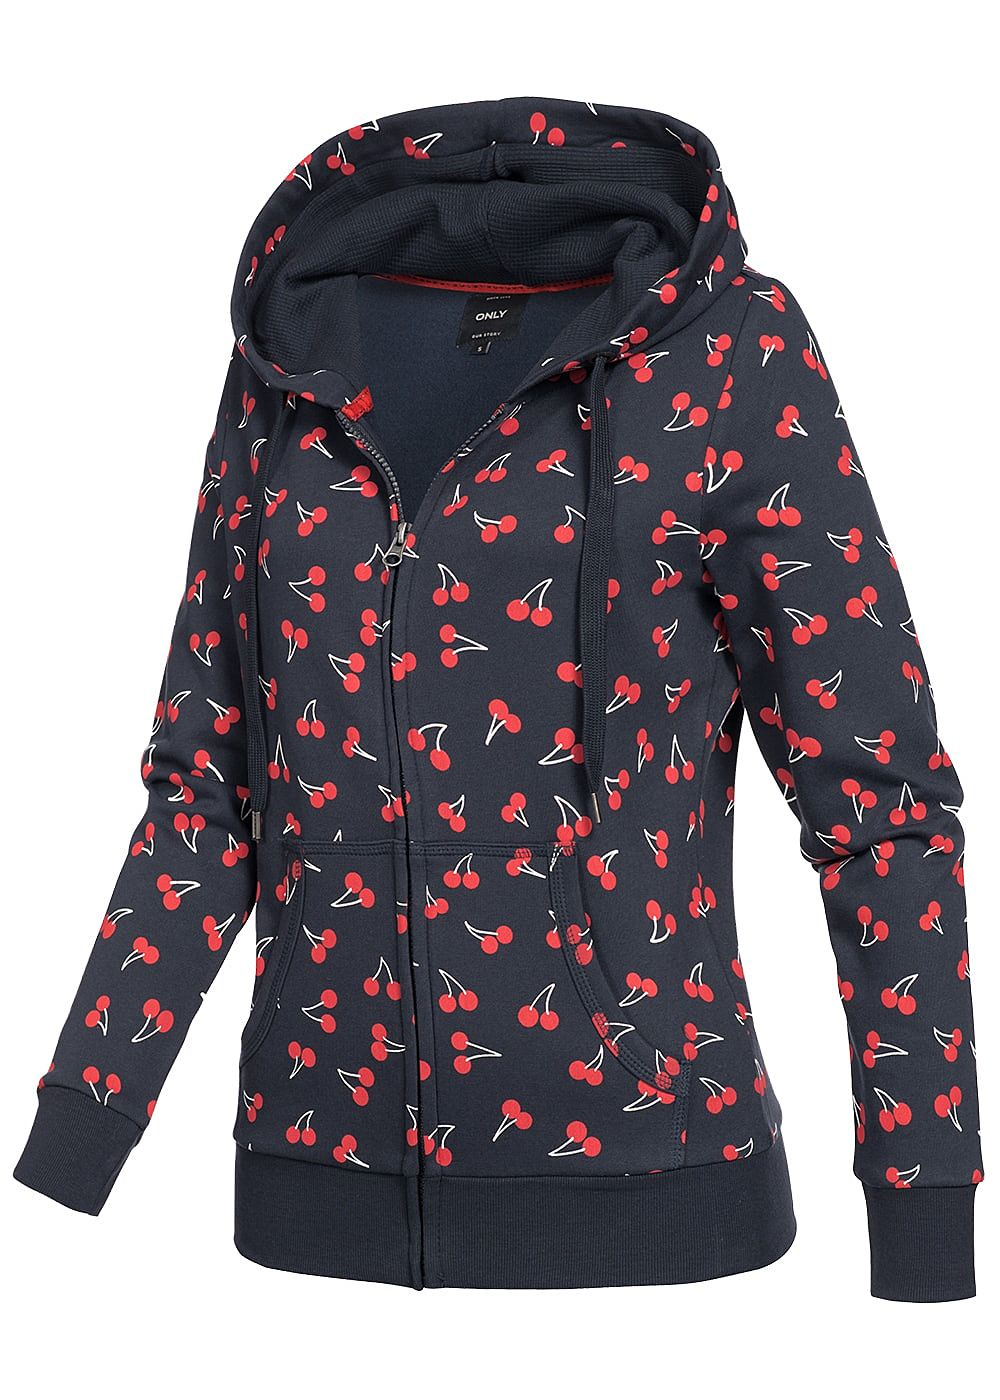 only damen zip hoodie kapuze kirsch muster 2 taschen night sky blau rot 77onlineshop. Black Bedroom Furniture Sets. Home Design Ideas